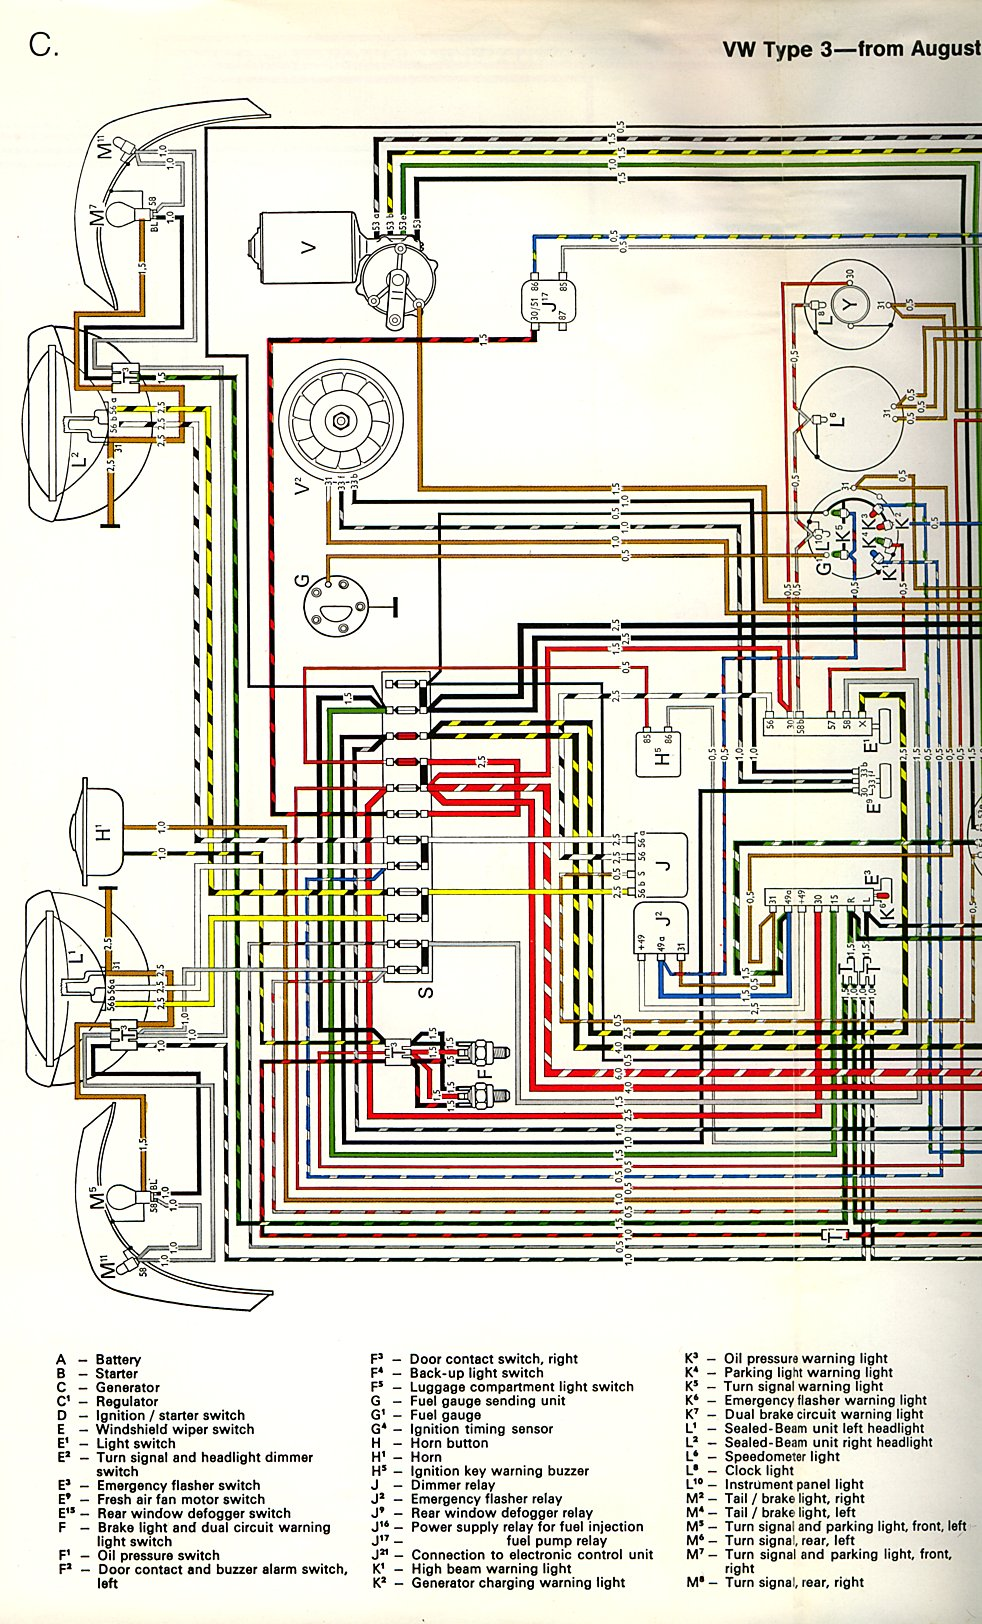 type3_72a thesamba com type 3 wiring diagrams 1968 vw bug headlight wiring diagram at soozxer.org